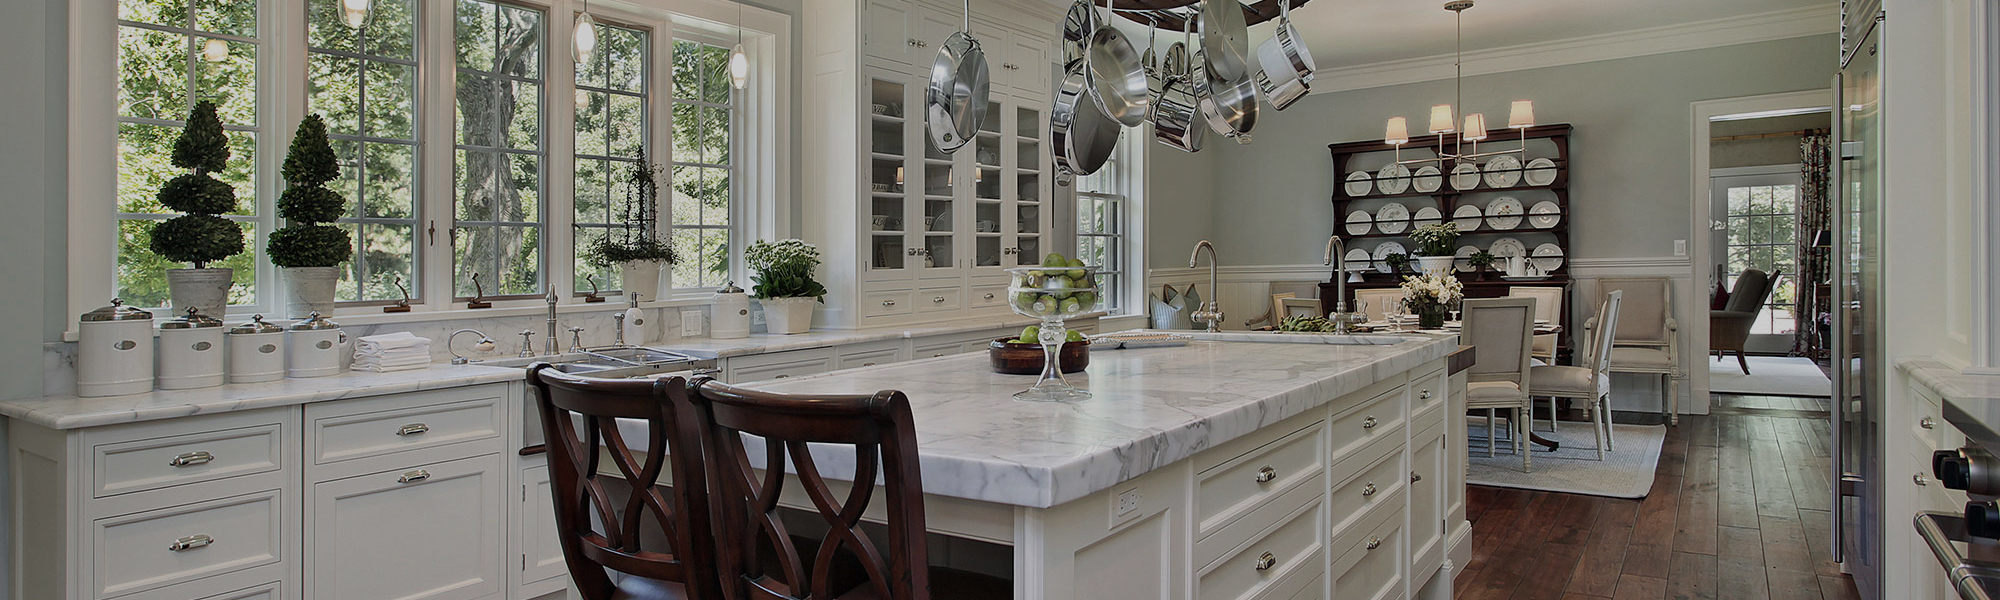 Custom Cabinetry And Kitchen Design Granite Countertops